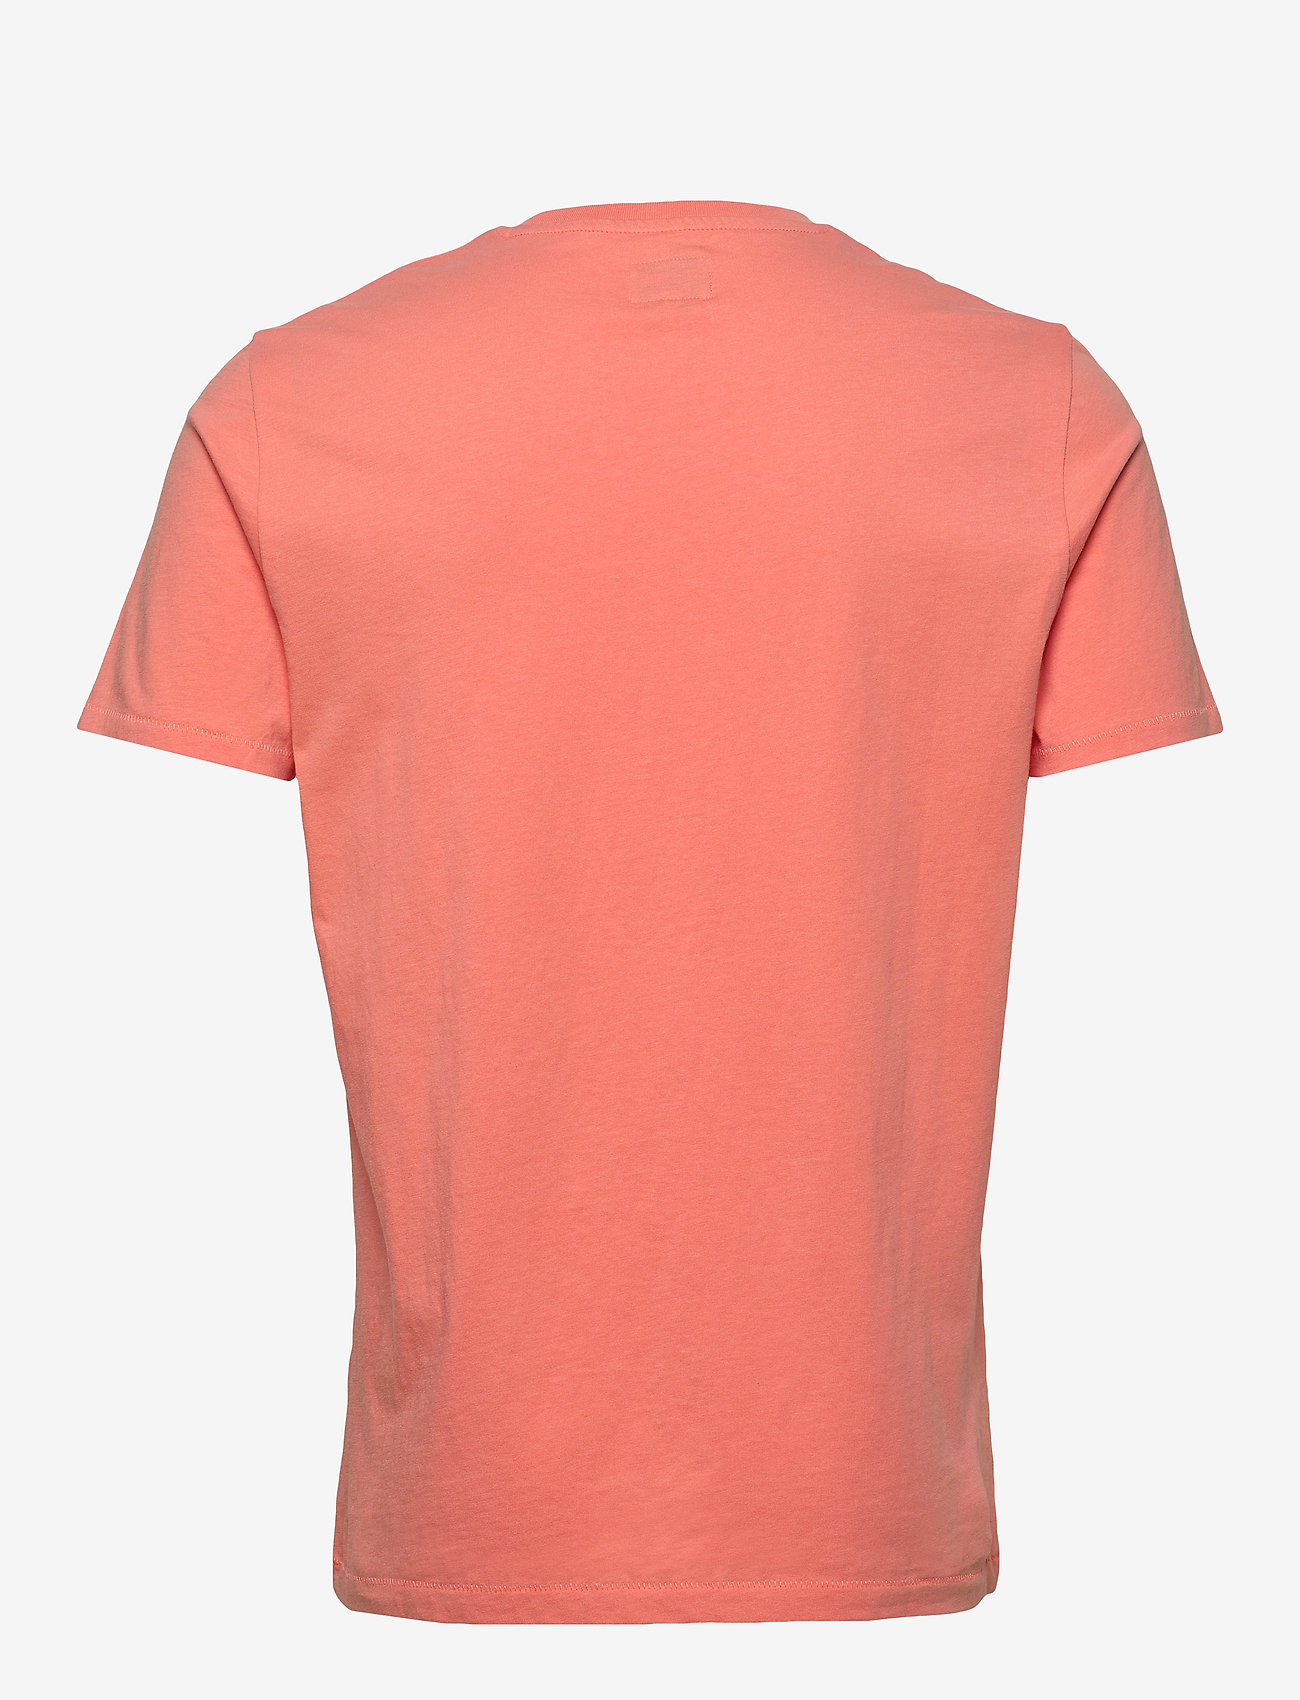 Ss Sign Off Tee (Melon Orange) - Wrangler 5oKr1O